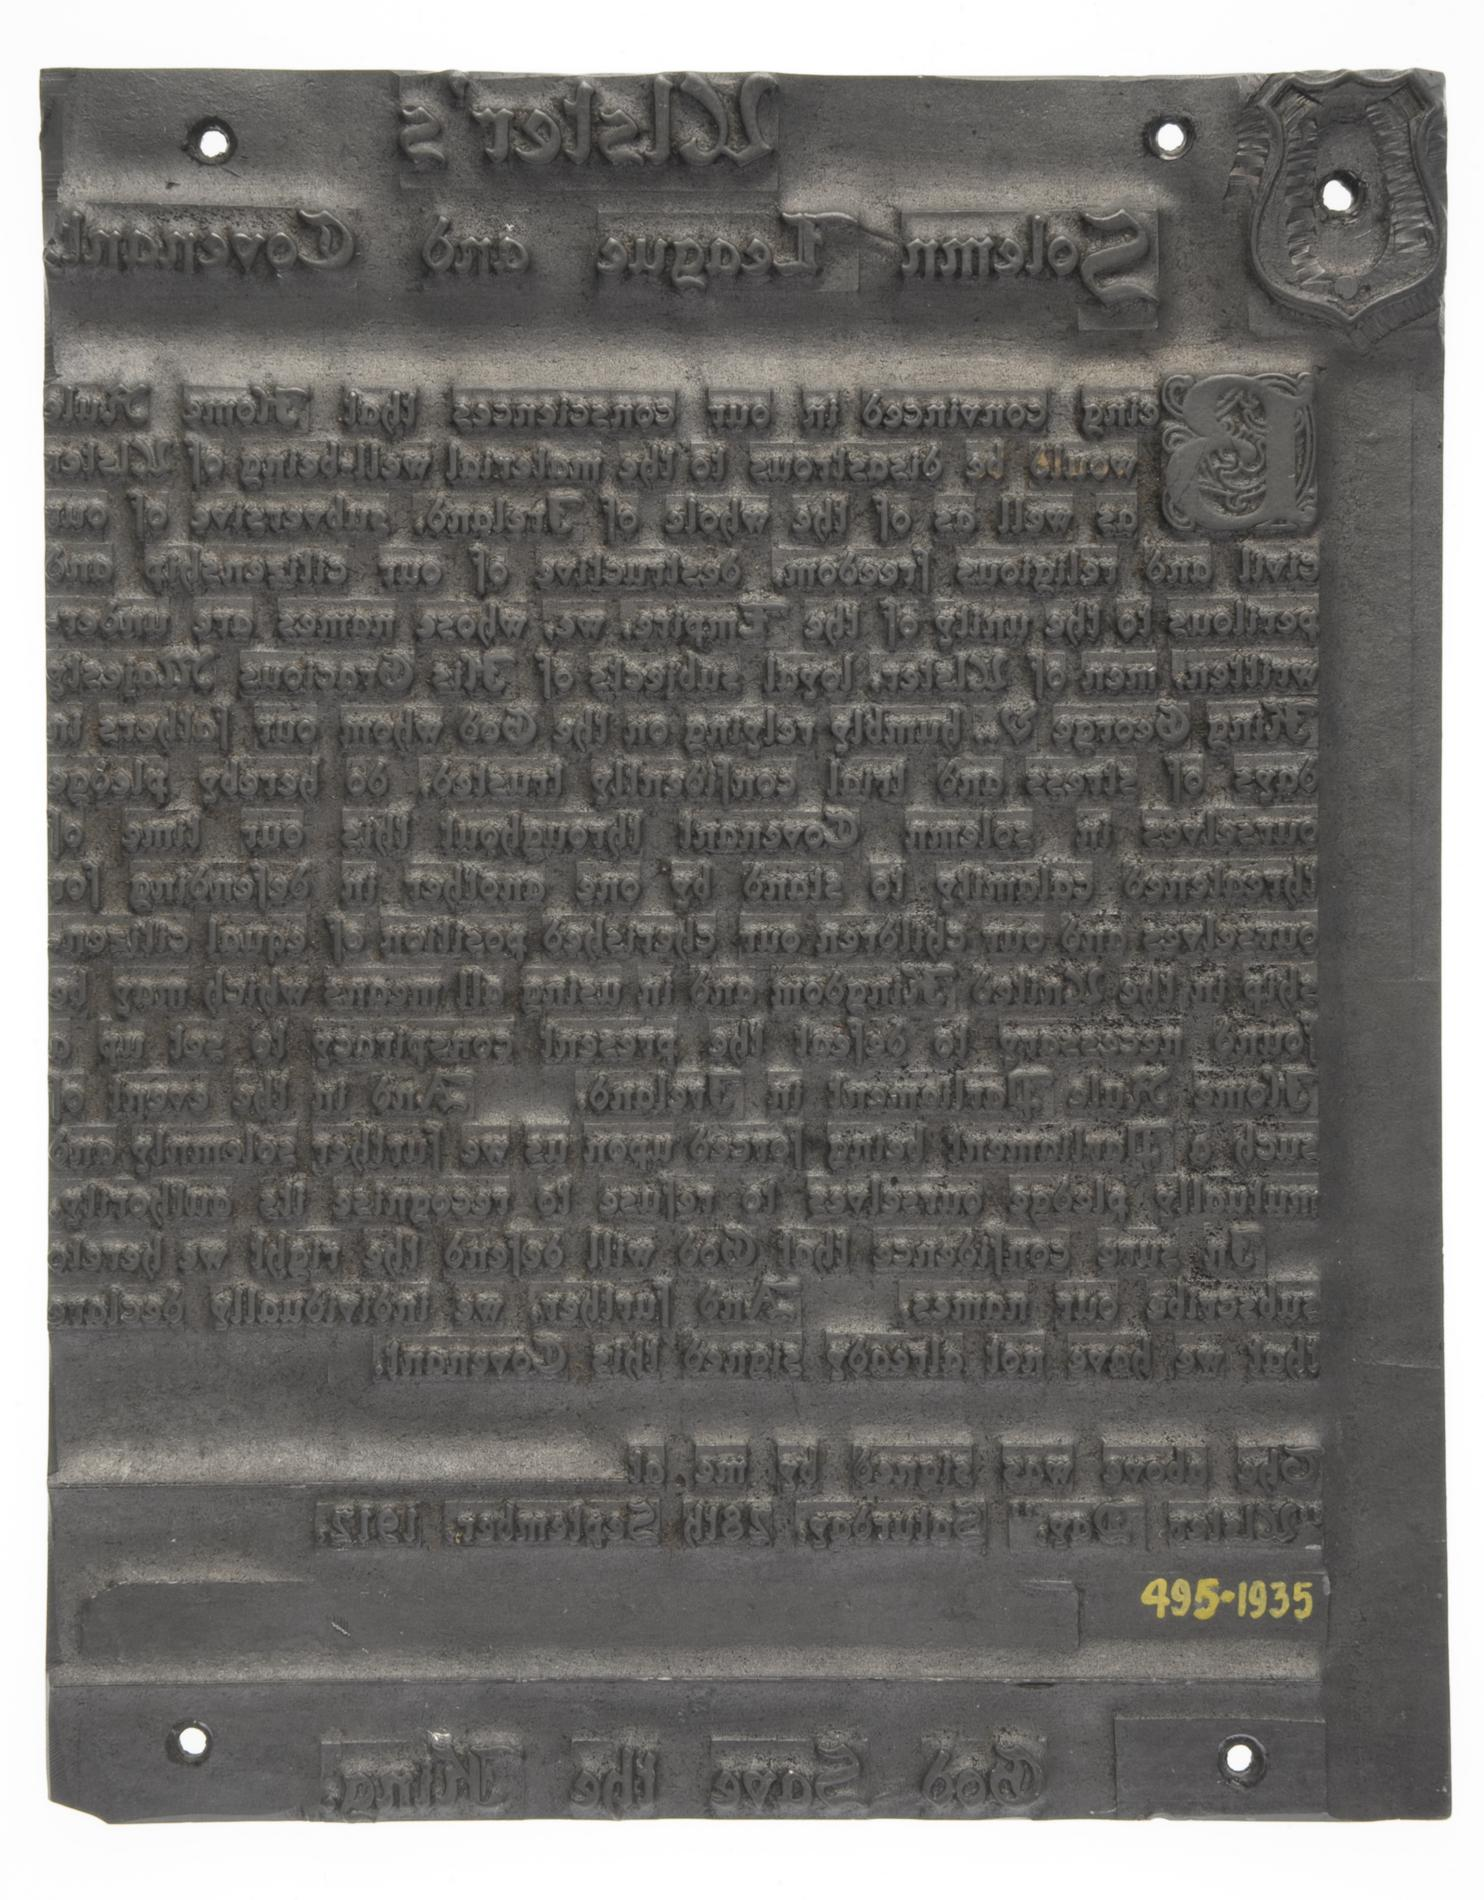 Ulster Solemn League and Covenant (Printing plate)